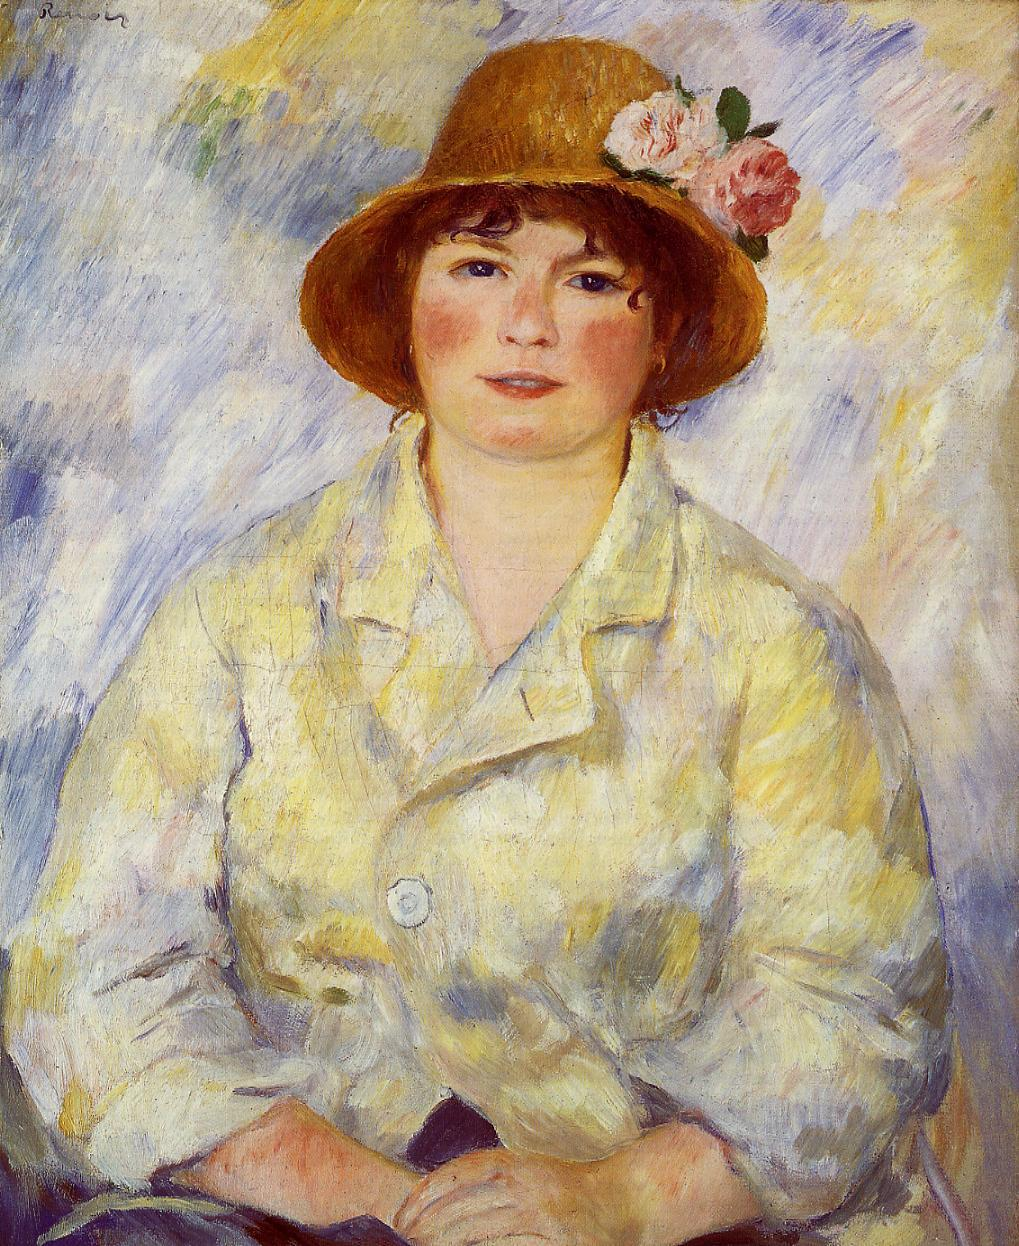 Pierre-Auguste_Renoir_Portrait_of_Madame_Renoir_(c._1885_small).jpg